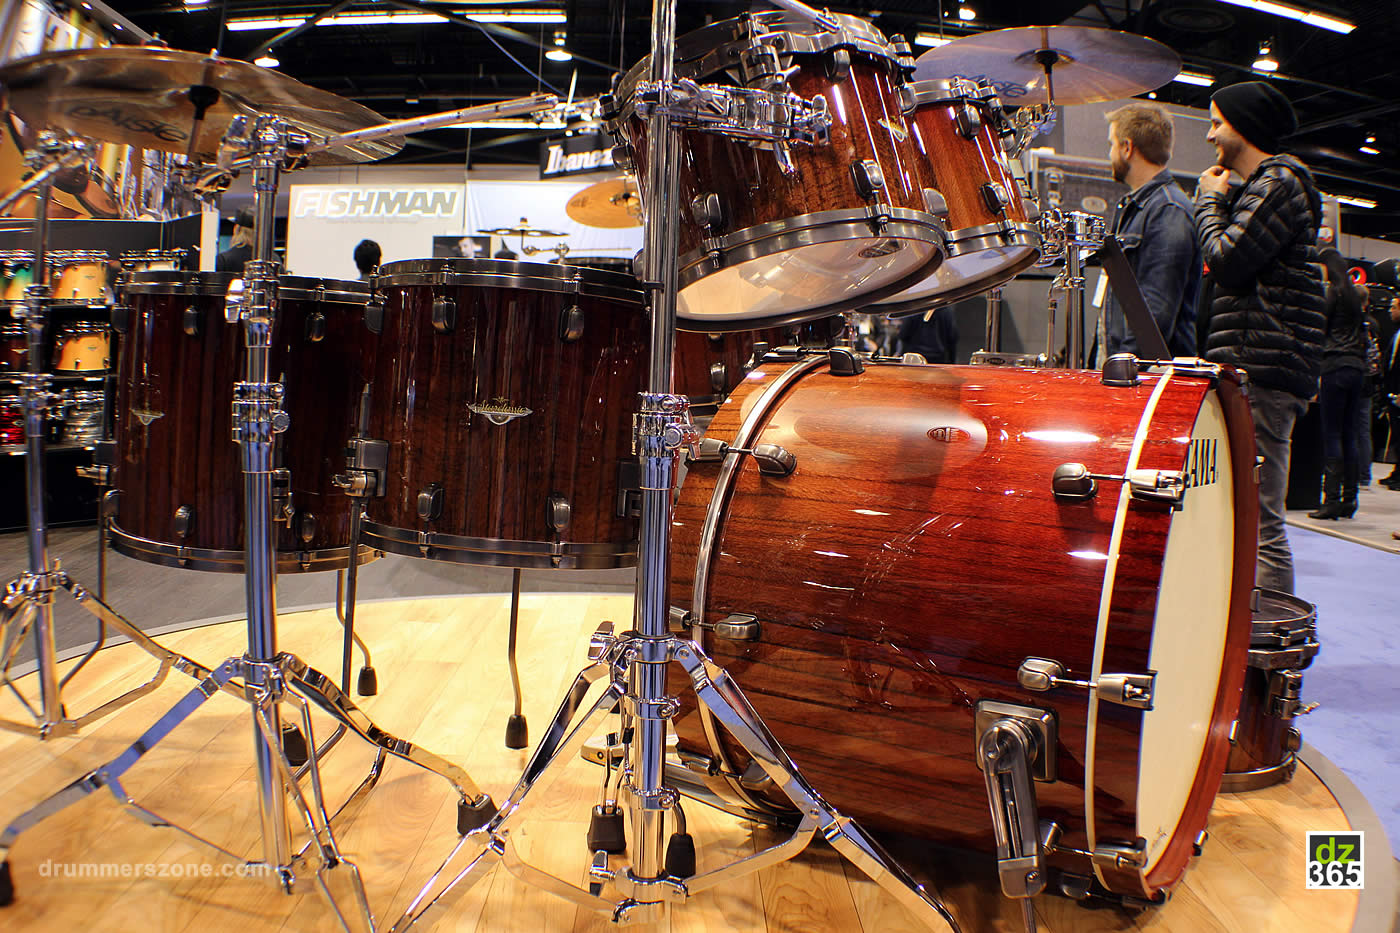 Drummerszone news - The new Tama drum finishes for 2017